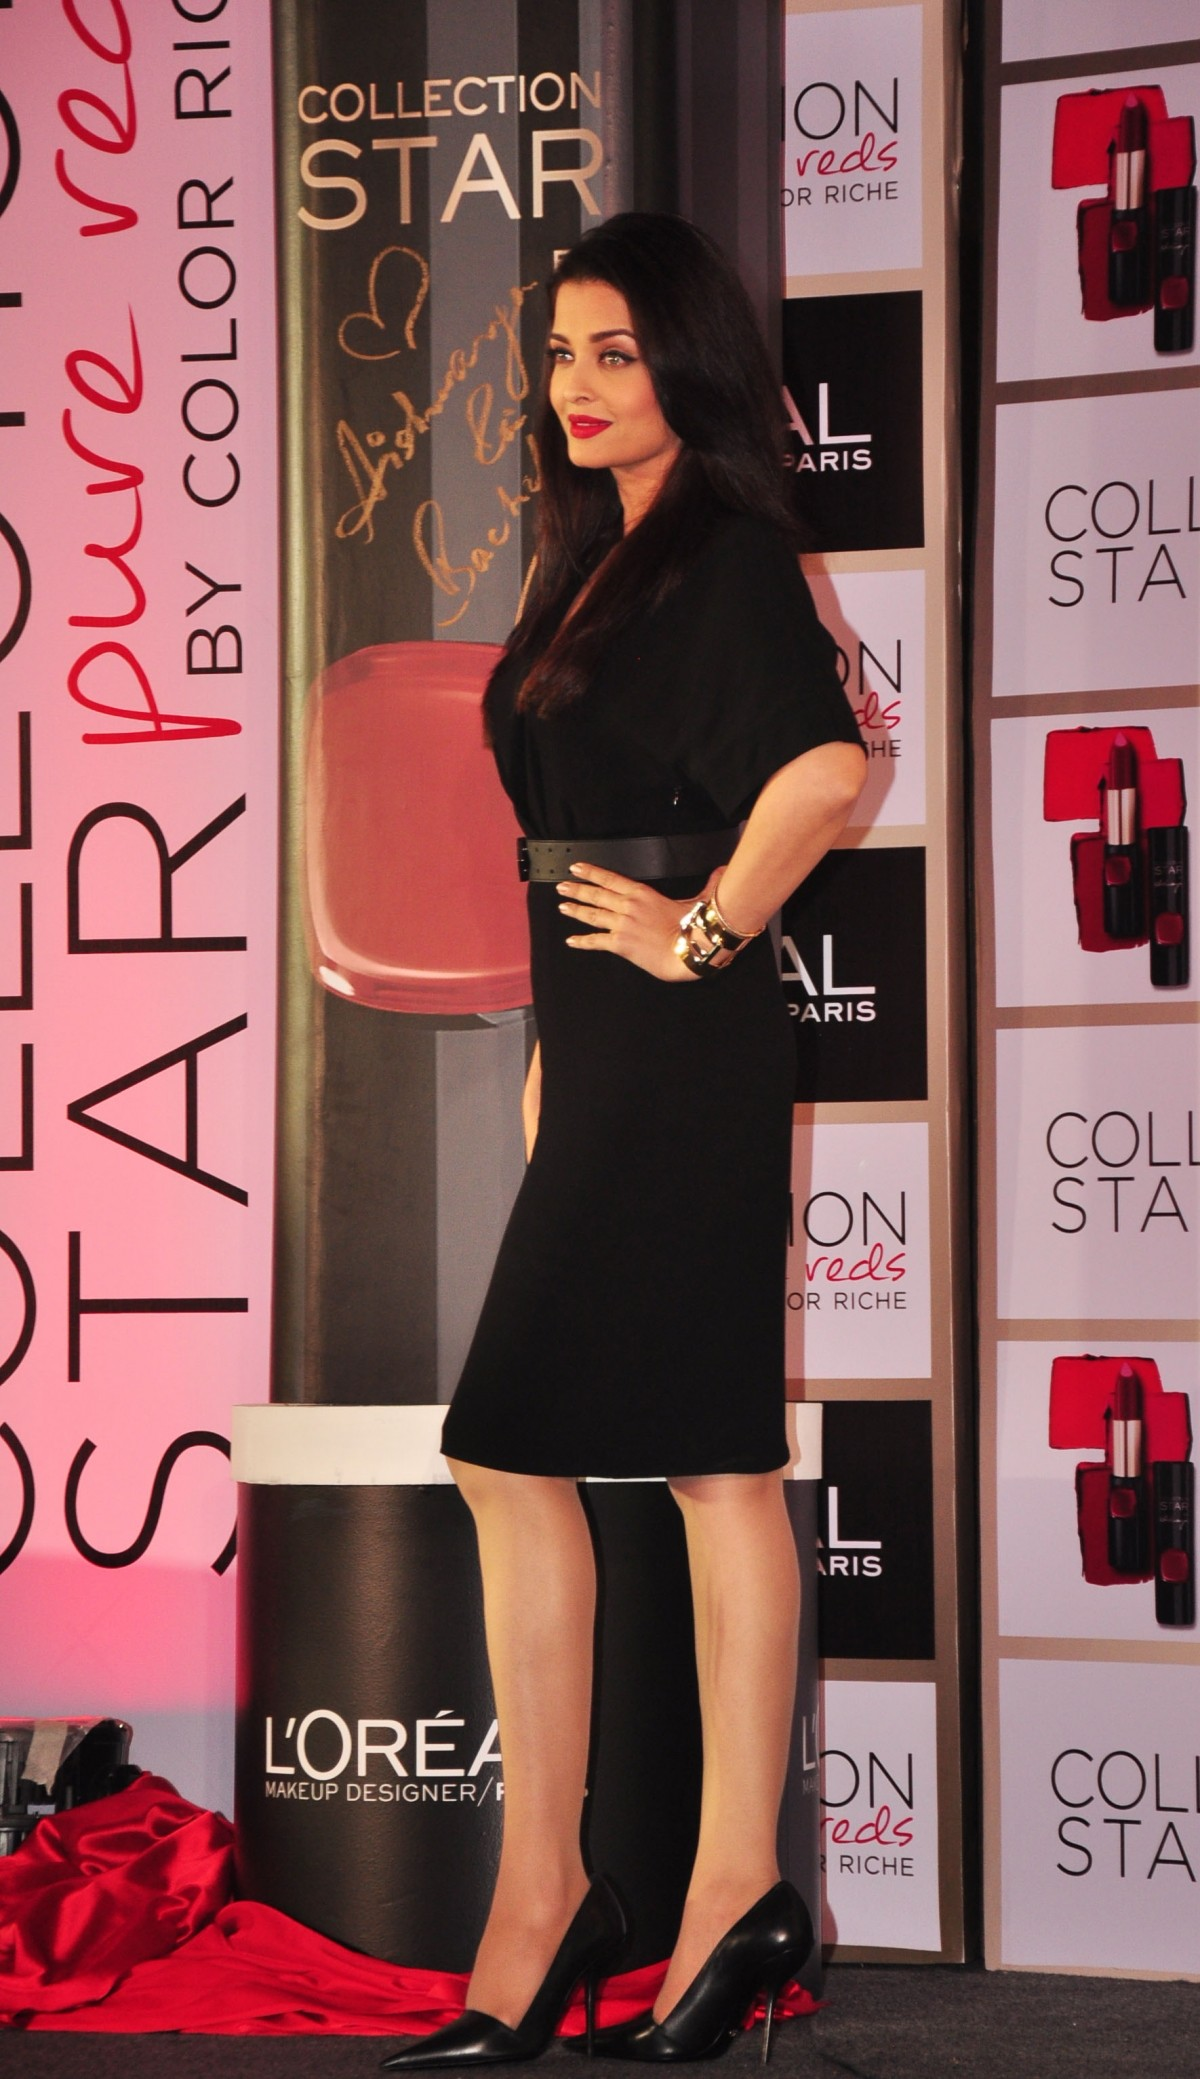 Aishwarya Rai Bachchan Charms in Black Dress at L'Oreal product launch event